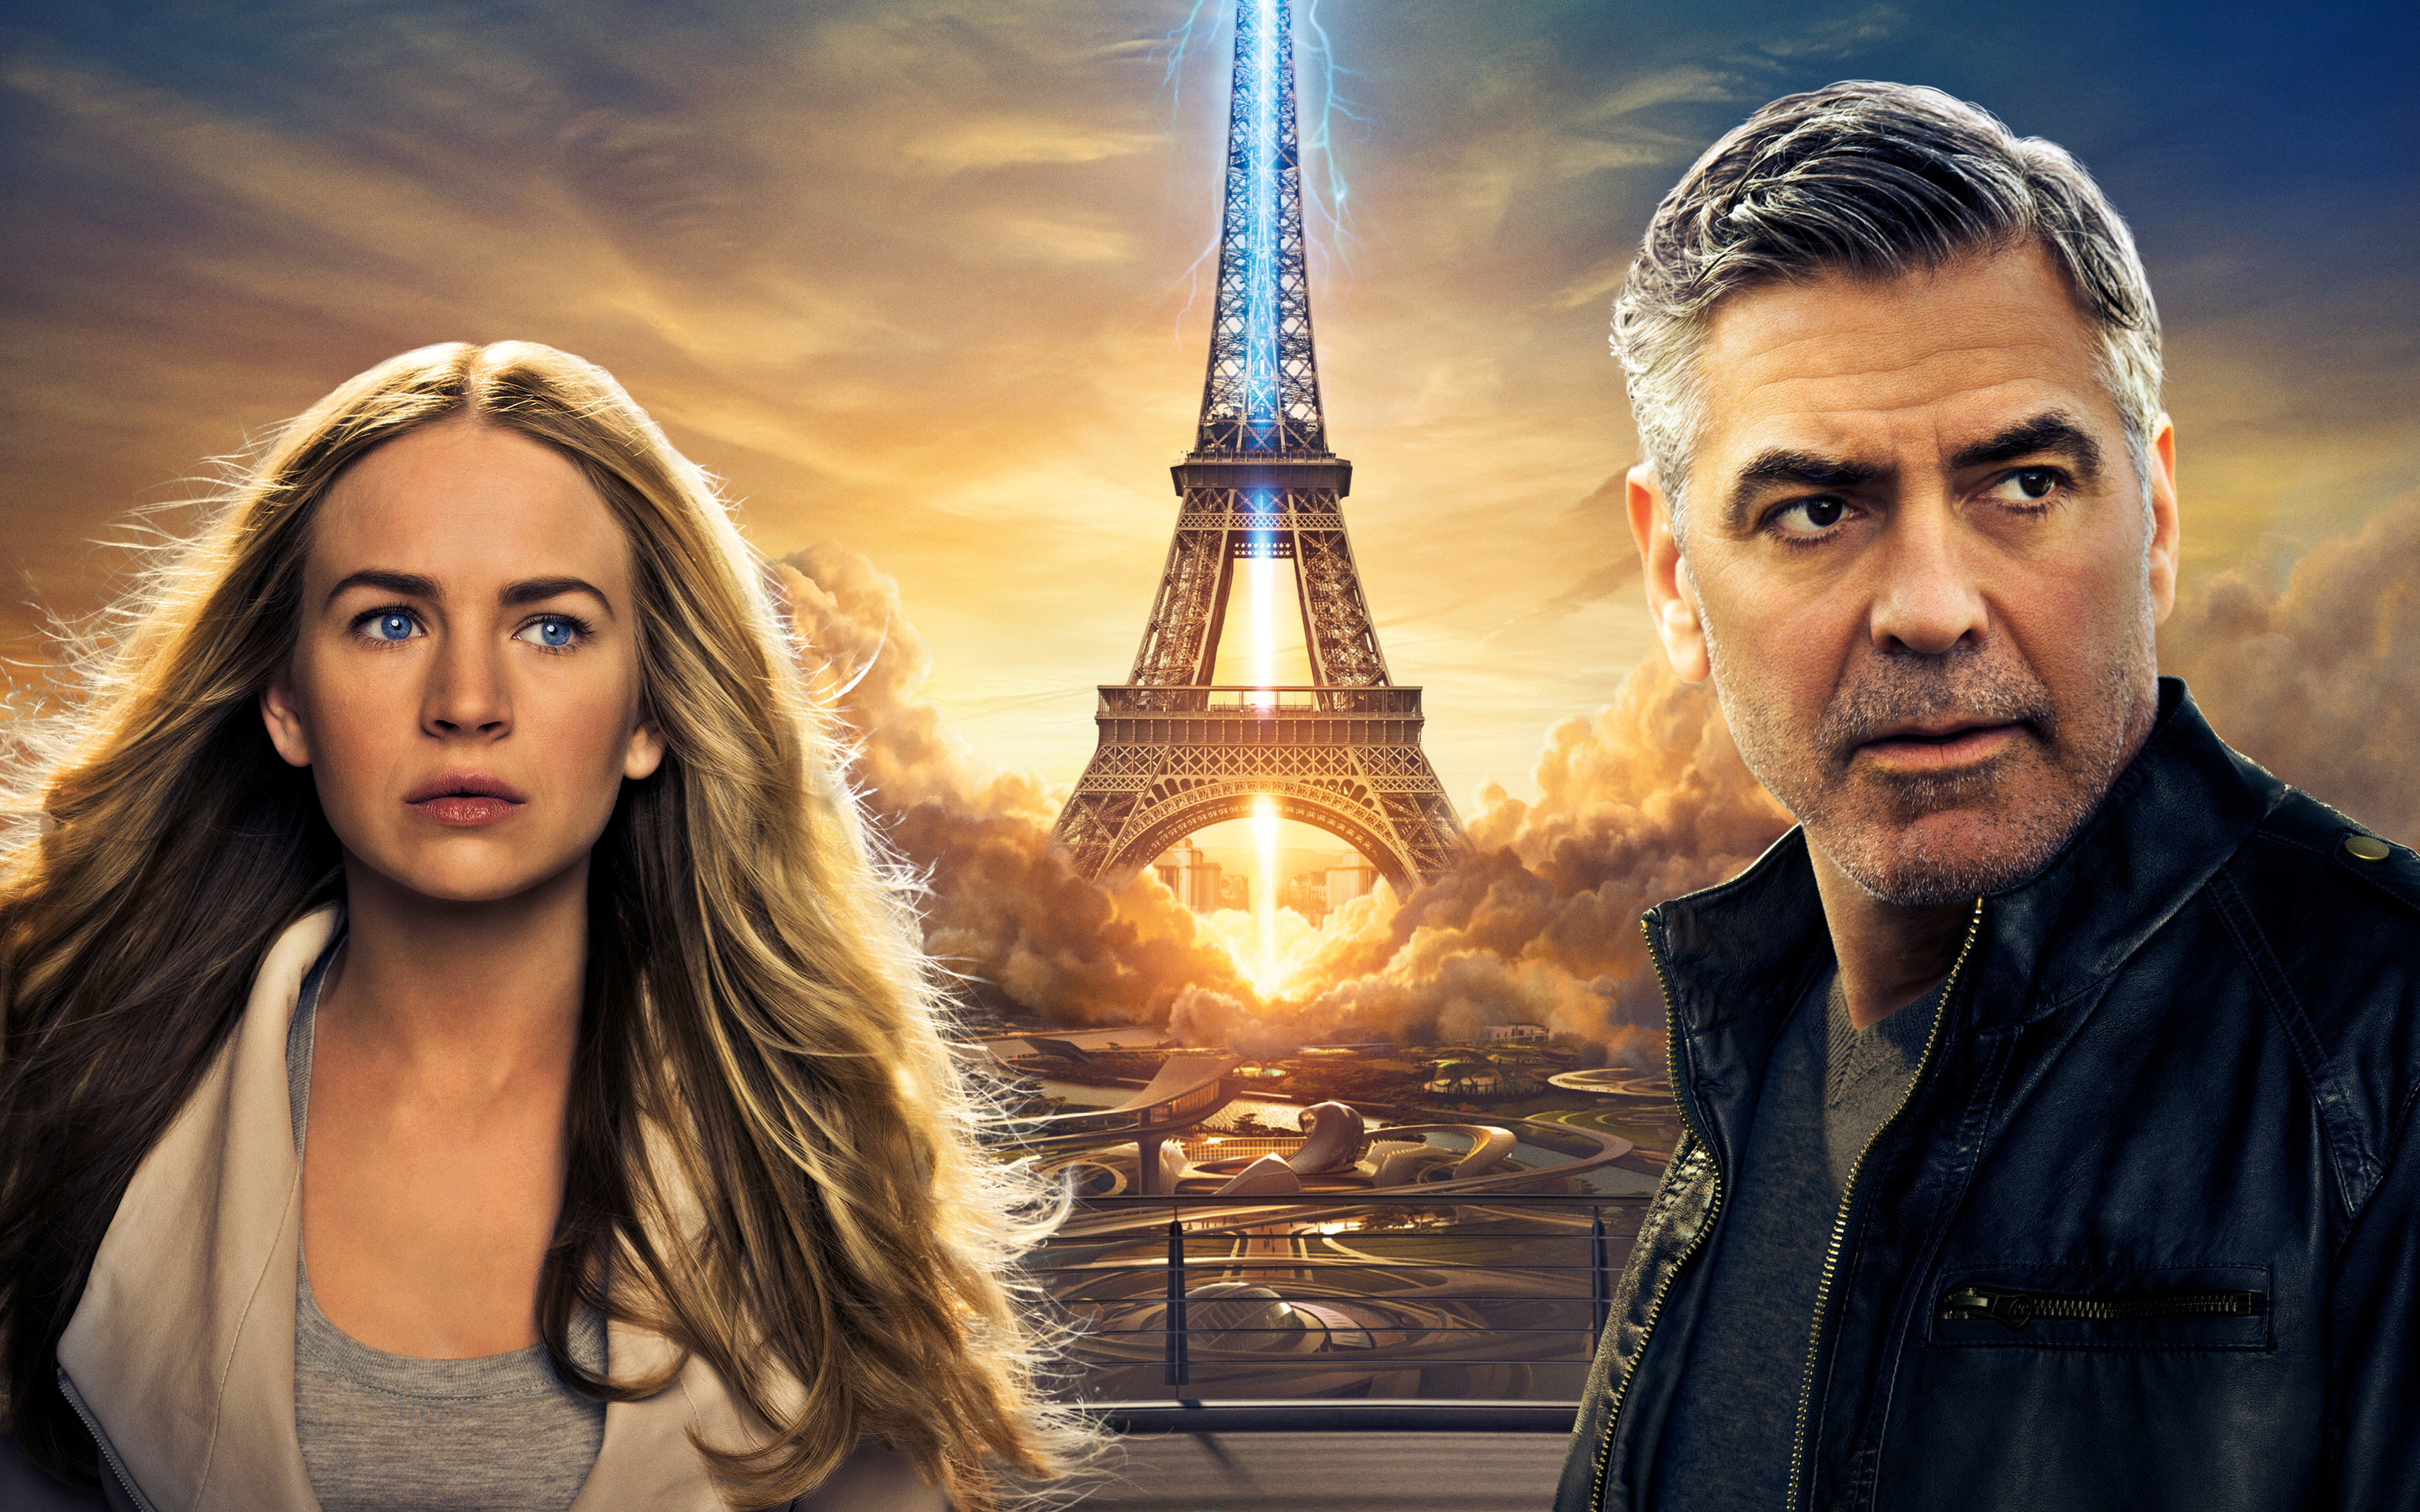 Tomorrowland: Terra do Amanhã (2015)